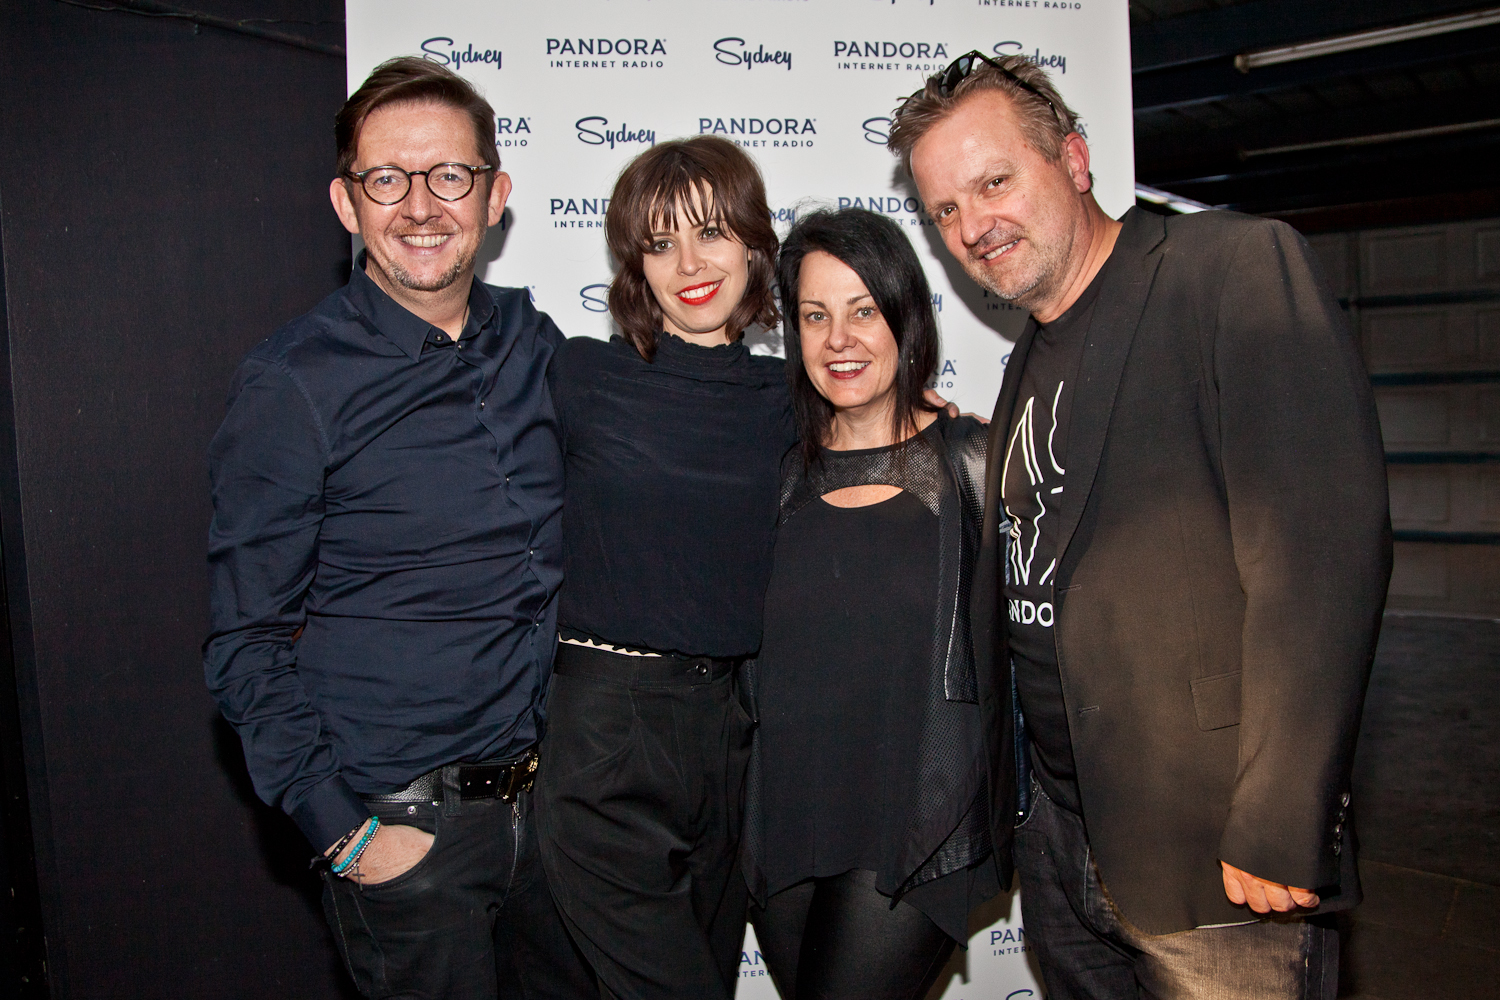 Jane Huxley, Rick Gleave, Thomas Heymann (Pandora) with Hayley from The Jezebels